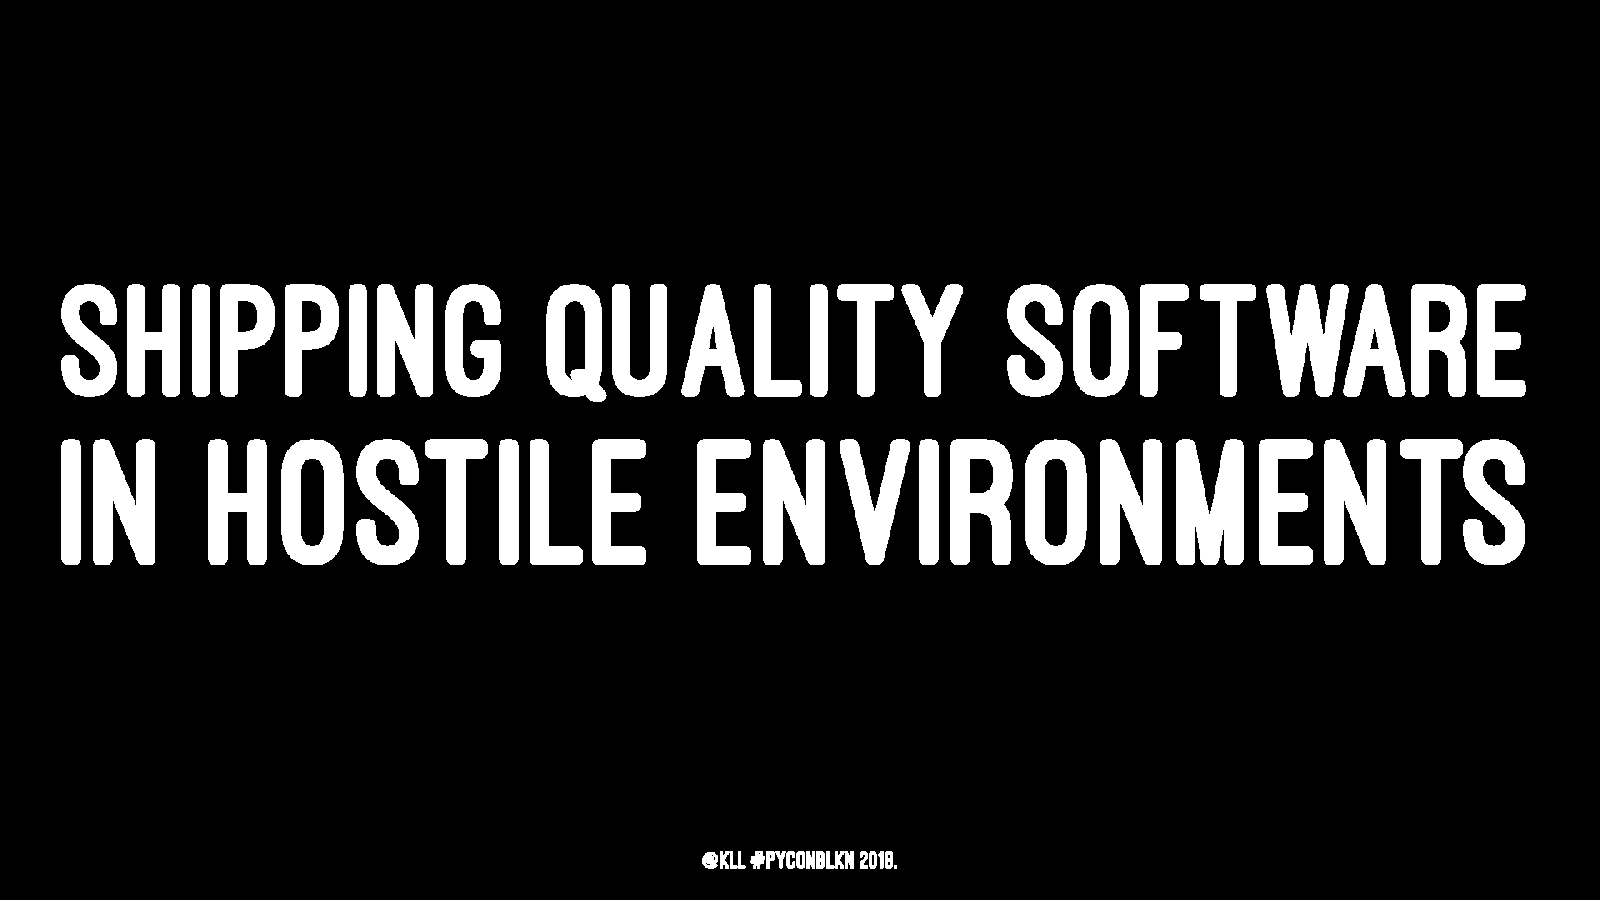 Shipping quality software in hostile environments